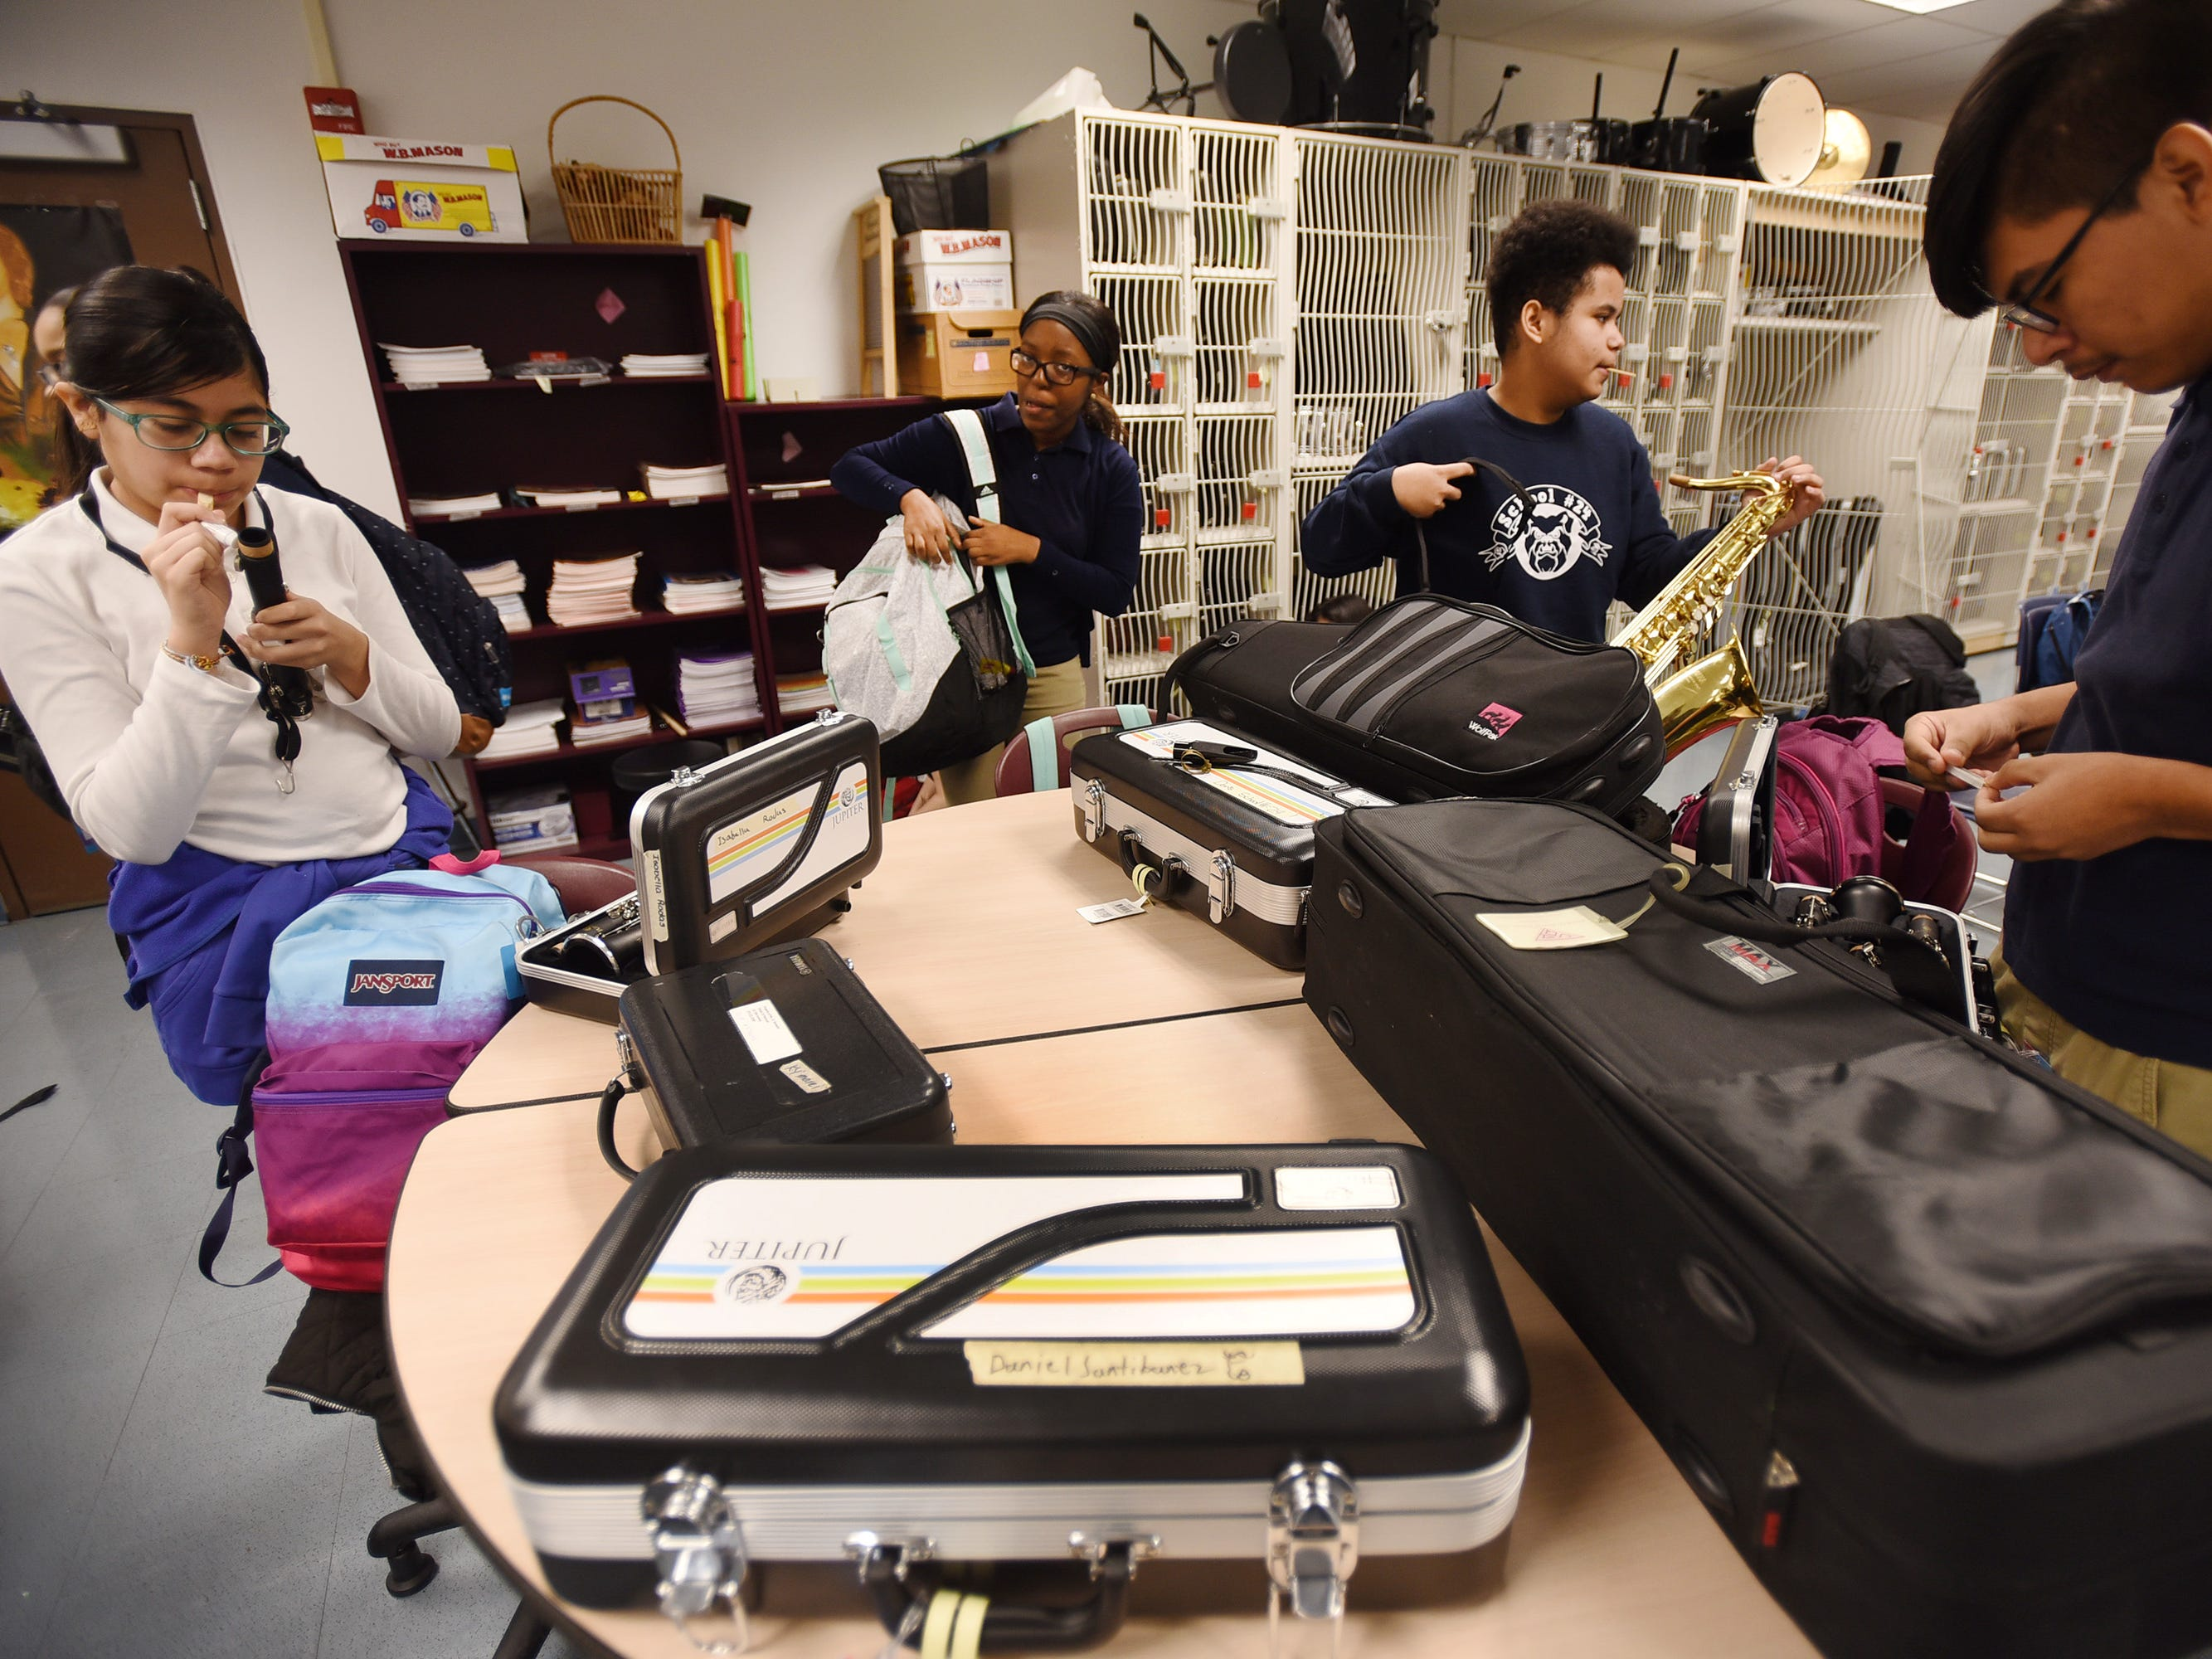 Sixth grader Isabella Rodas (L), prepares her clarinet prior to practice led by the Band Director Nancy Horowitz at School #24 in Paterson on 01/09/19.